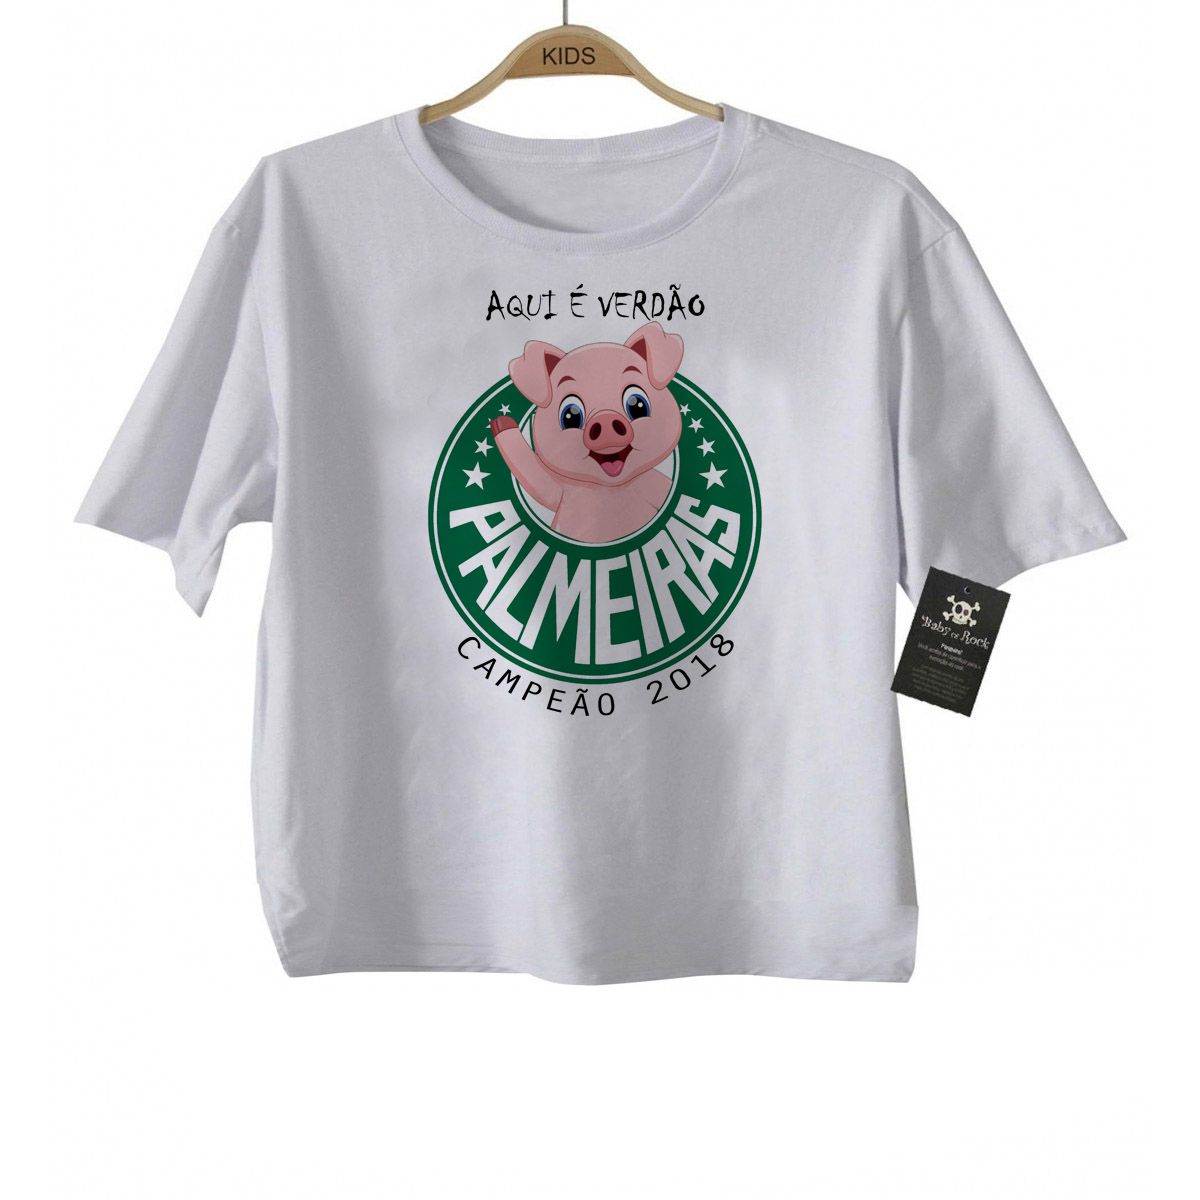 Camiseta Bebe  -  Palmeiras Campeao  - White  - Baby Monster - Body Bebe